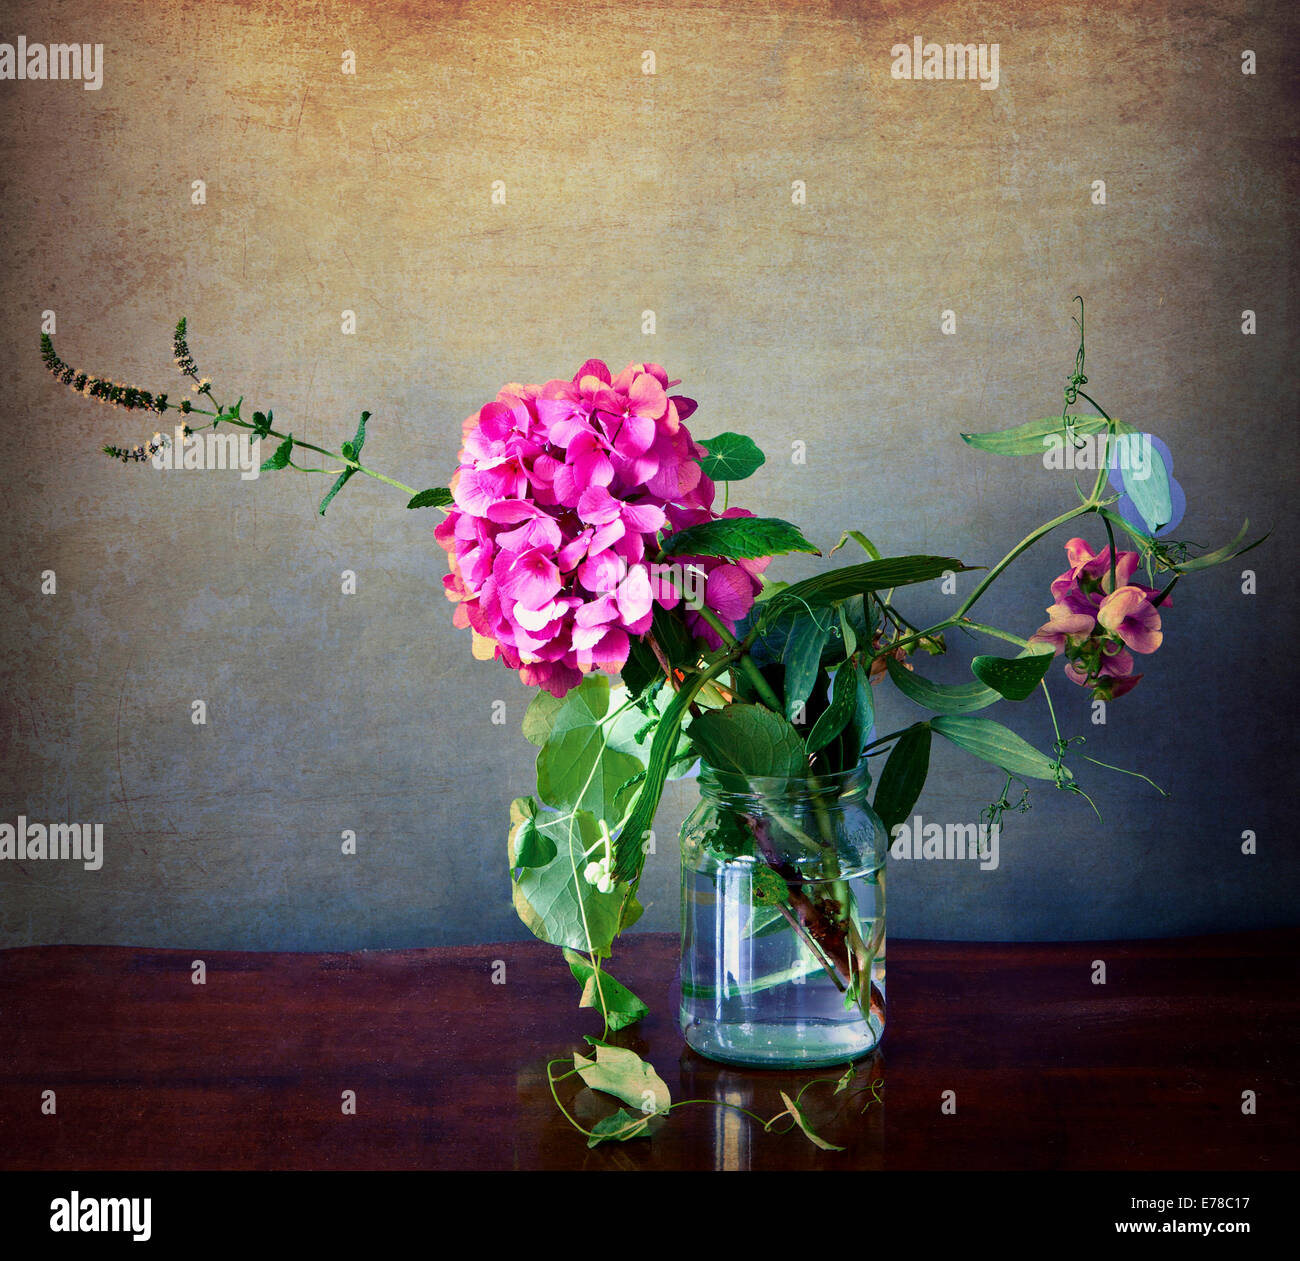 Pink hydrangea and field flowers in a glass with vintage texture and retro Instagram-like effects added Stock Photo